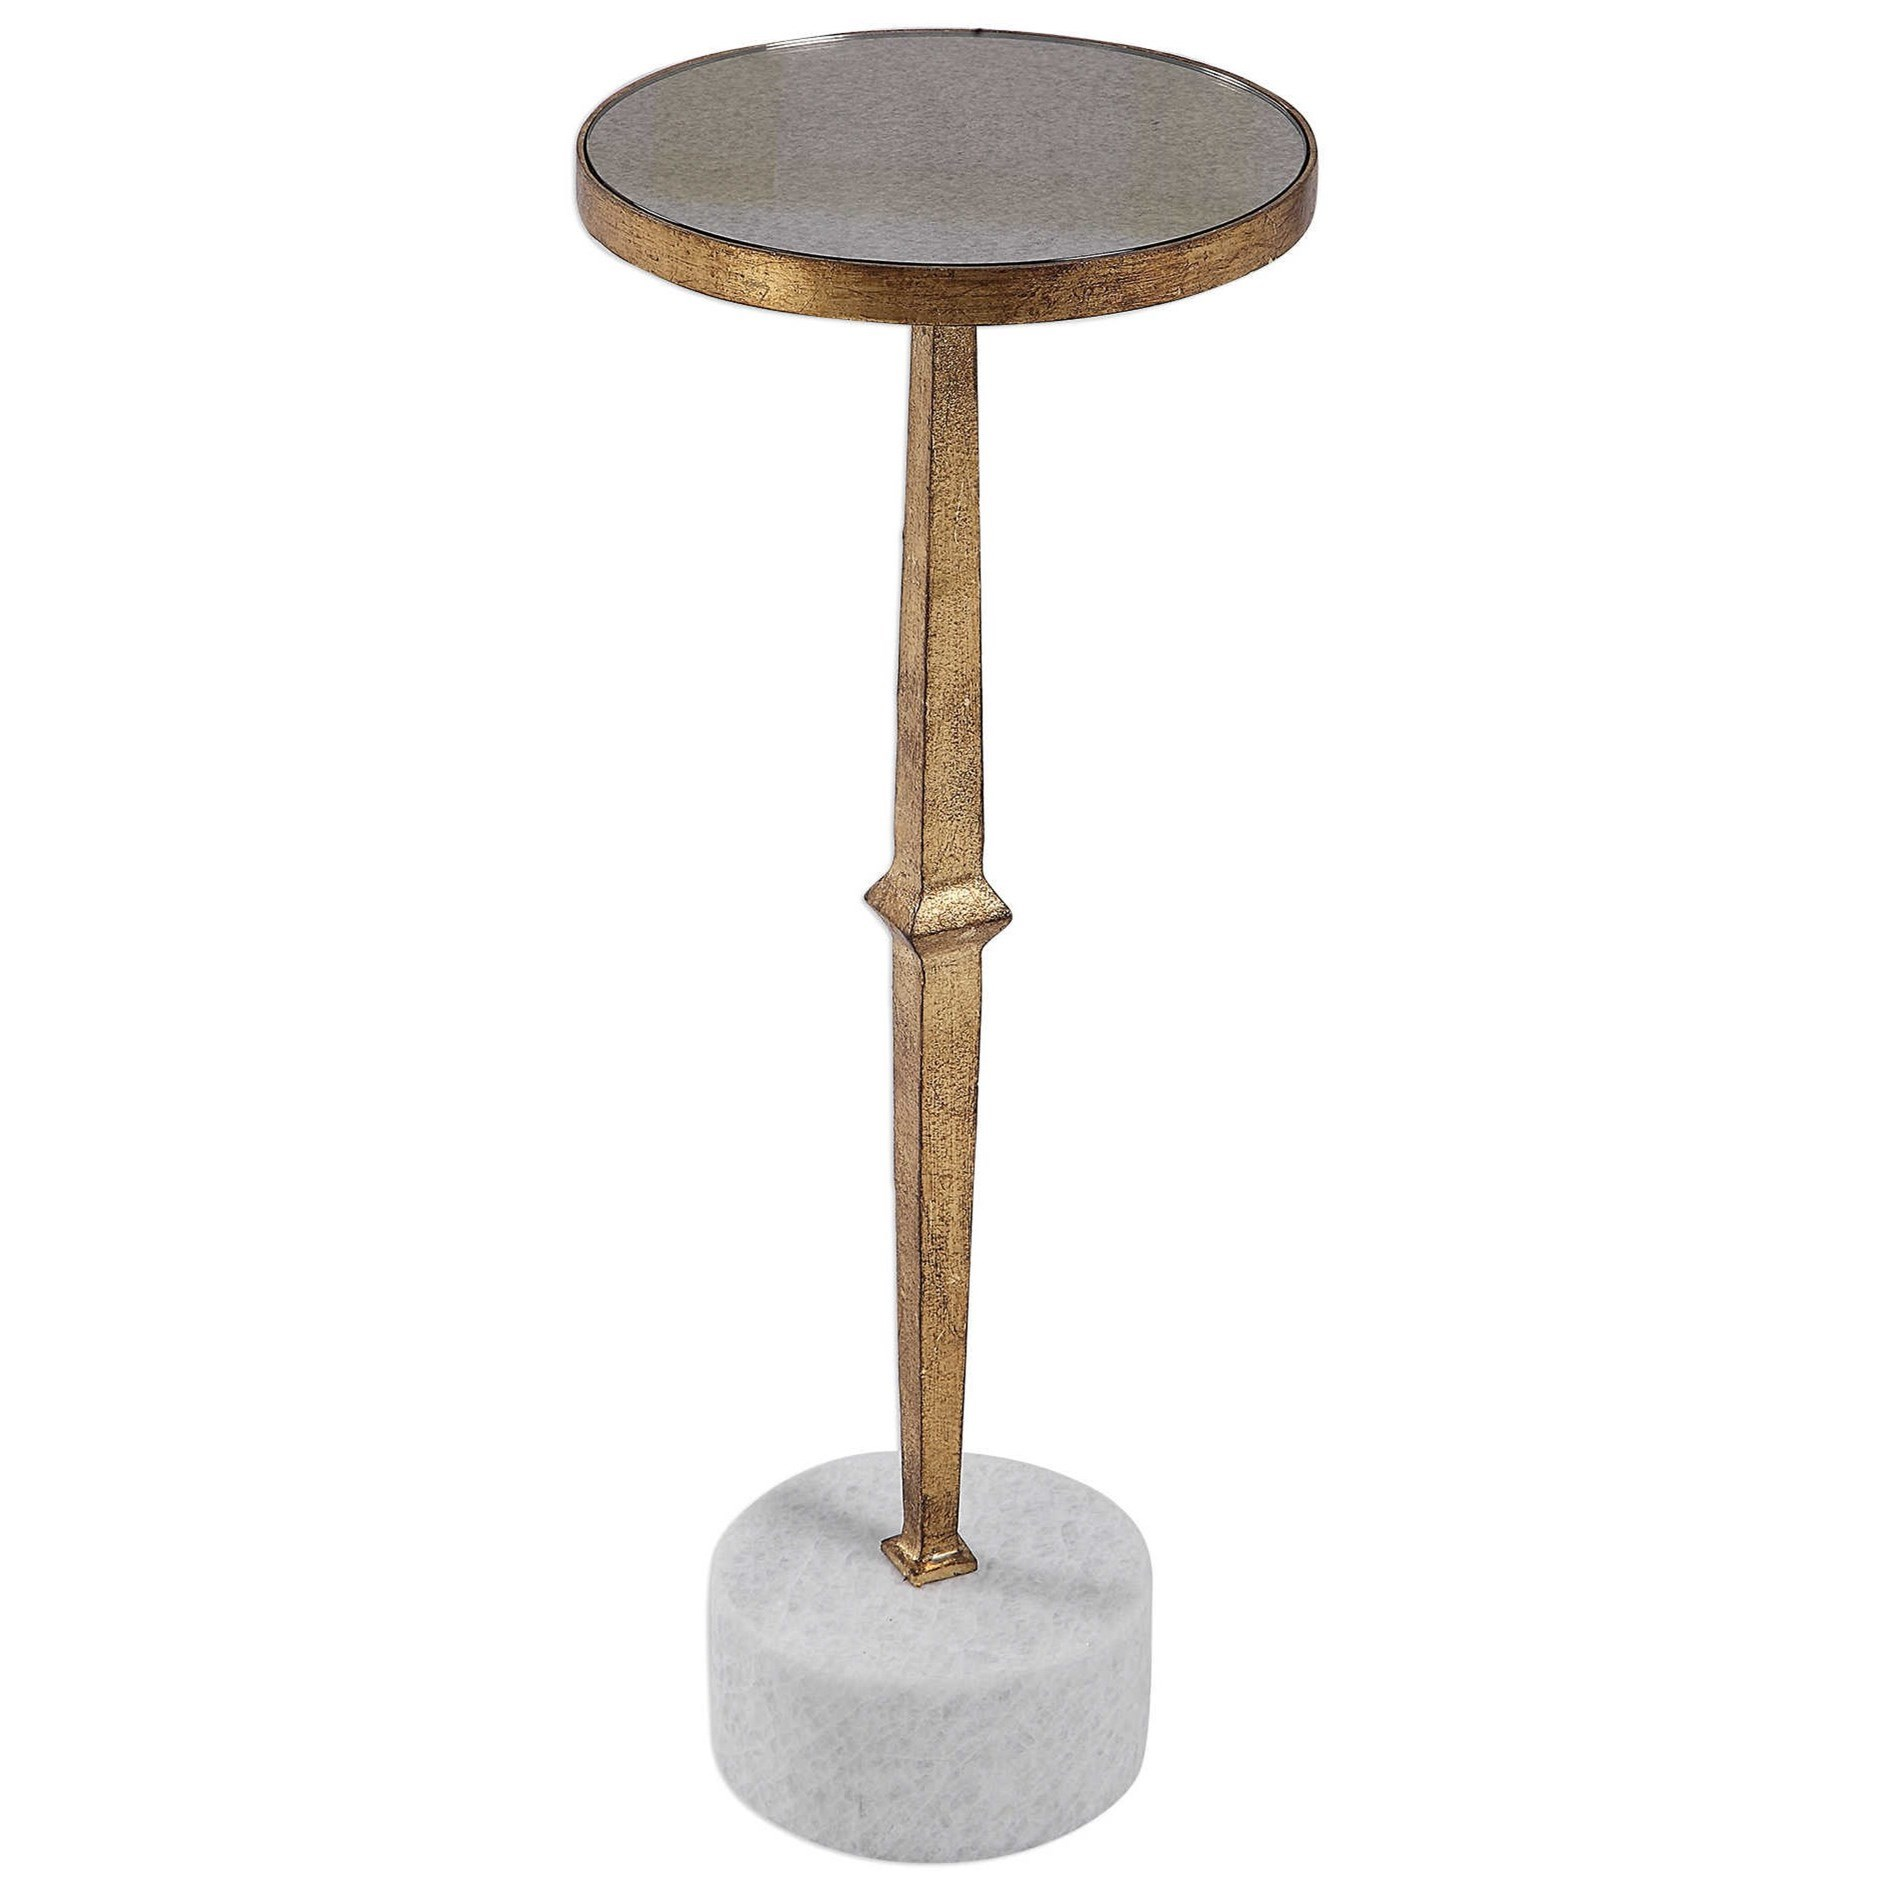 Accent Furniture - Occasional Tables Miriam Round Accent Table by Uttermost at Factory Direct Furniture